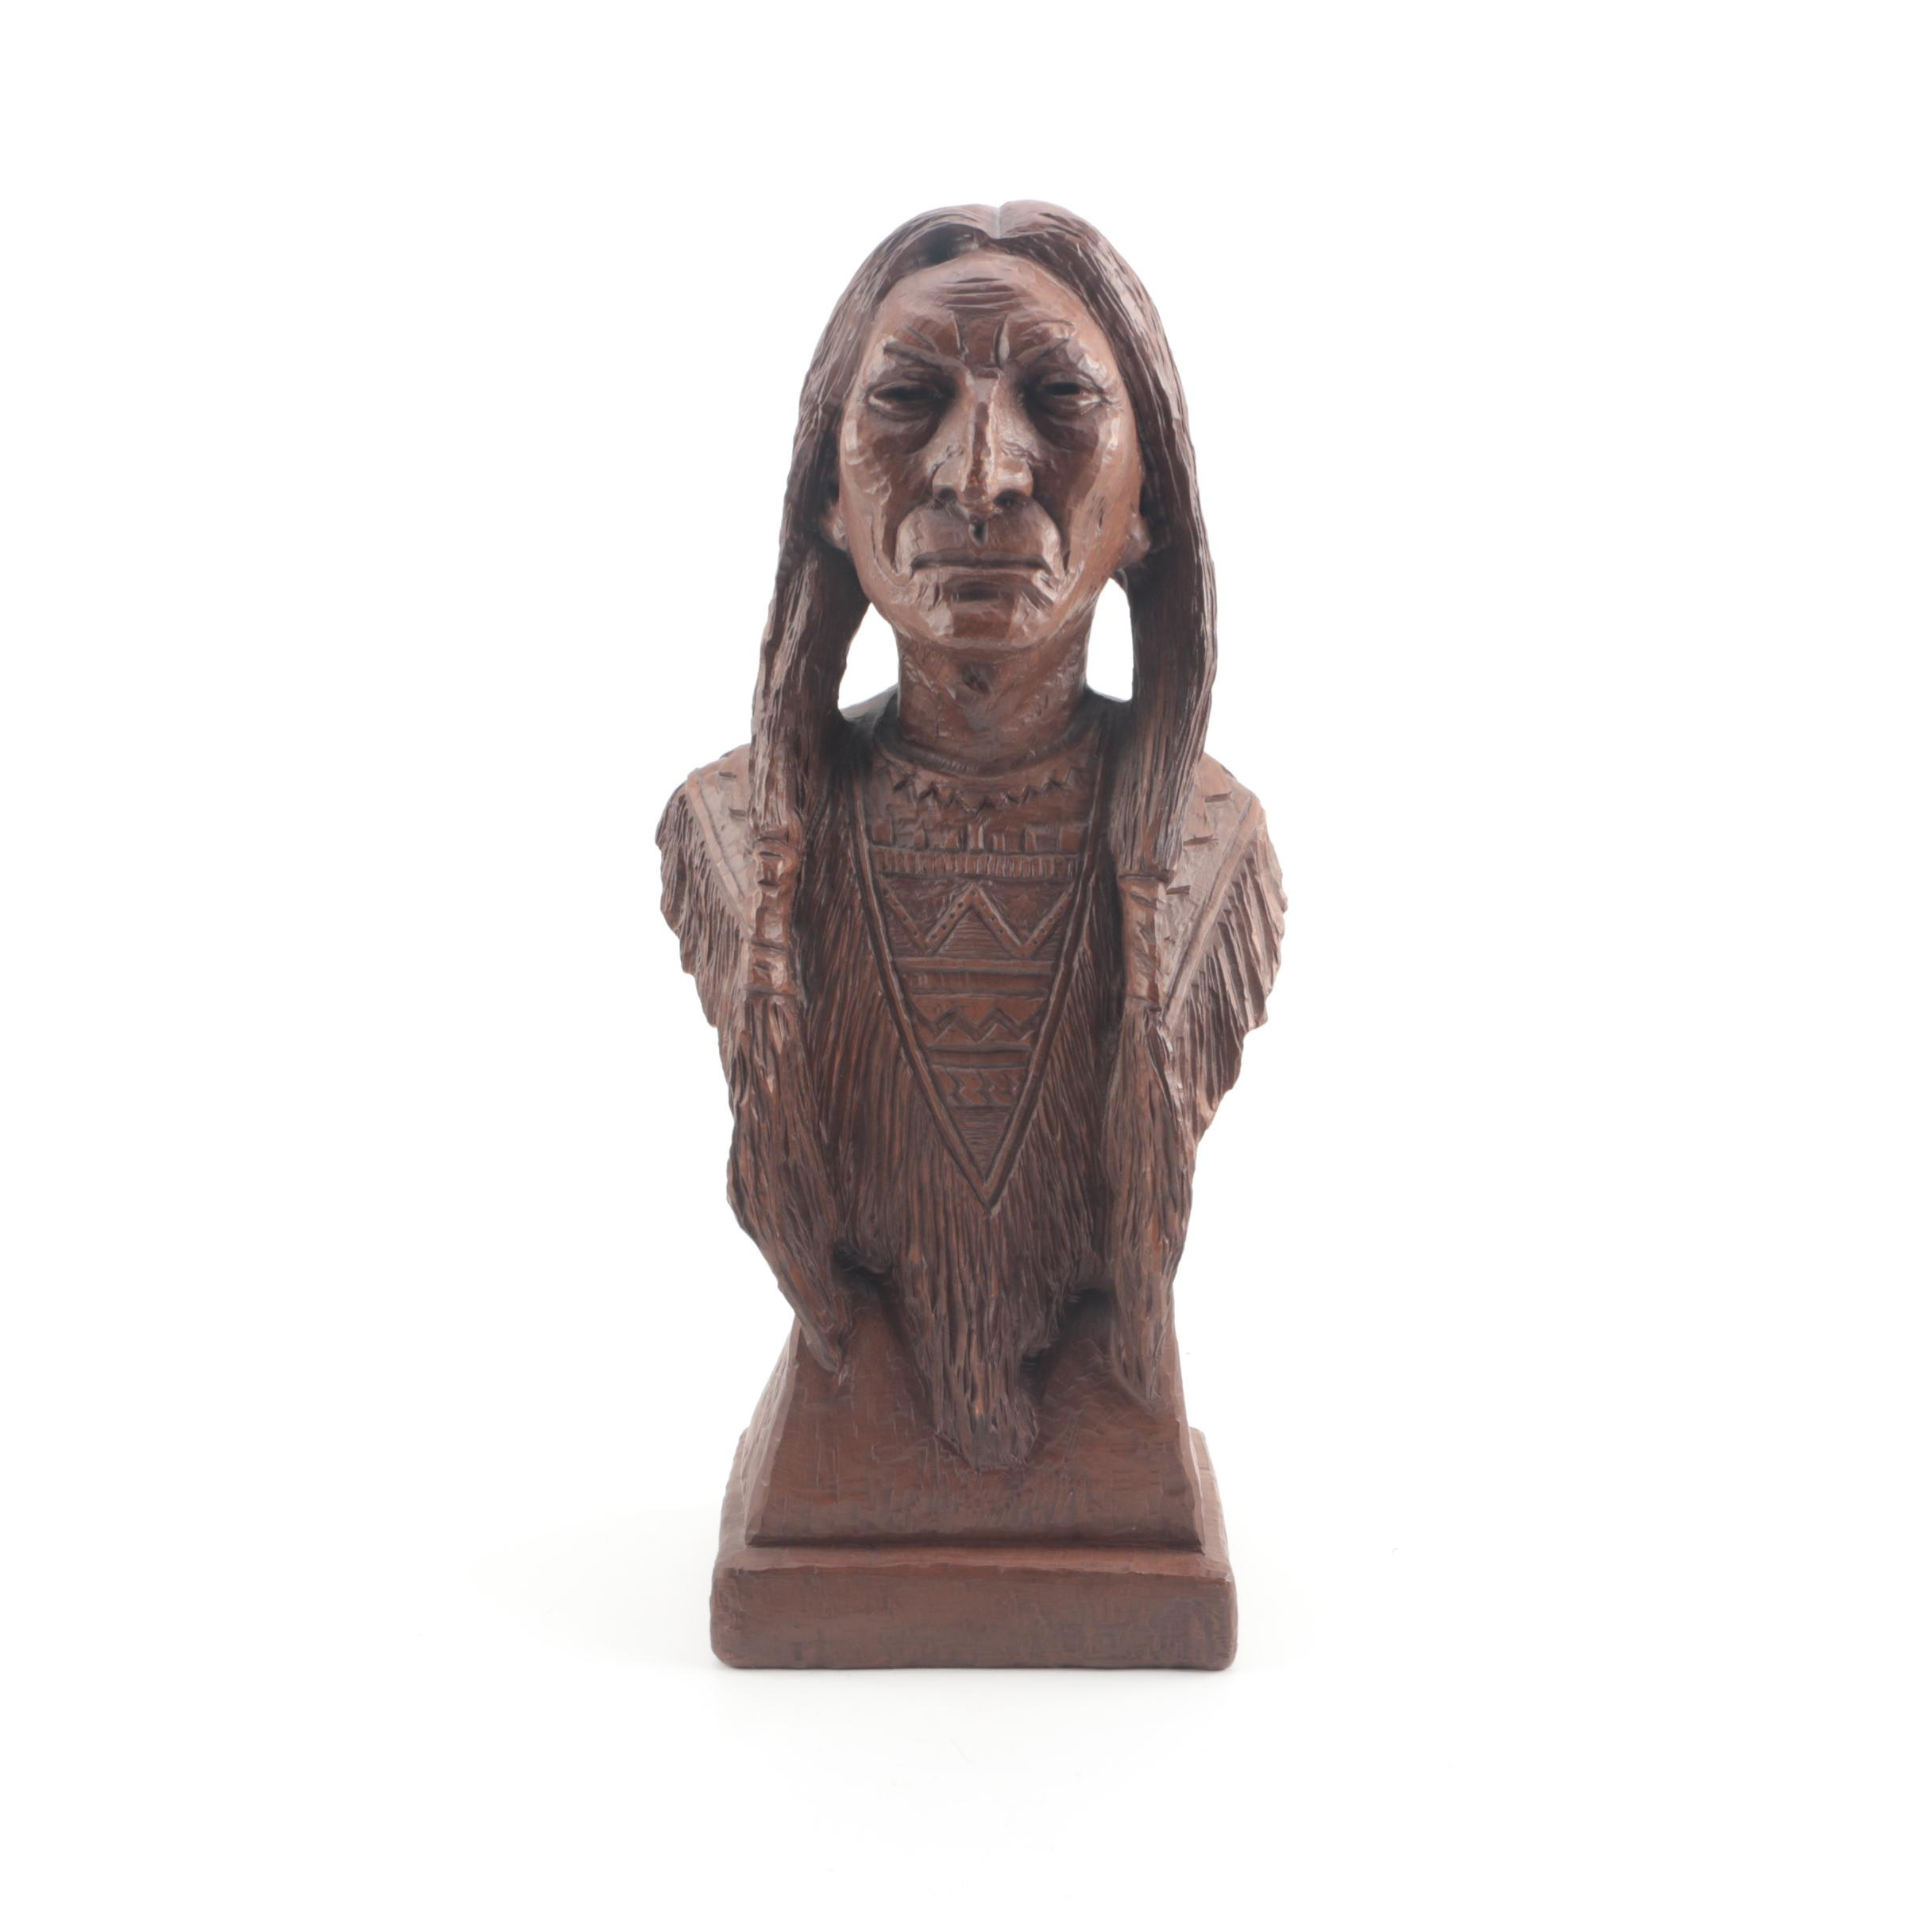 1987 Red Mill Mfg Handcrafted Bust of Native American